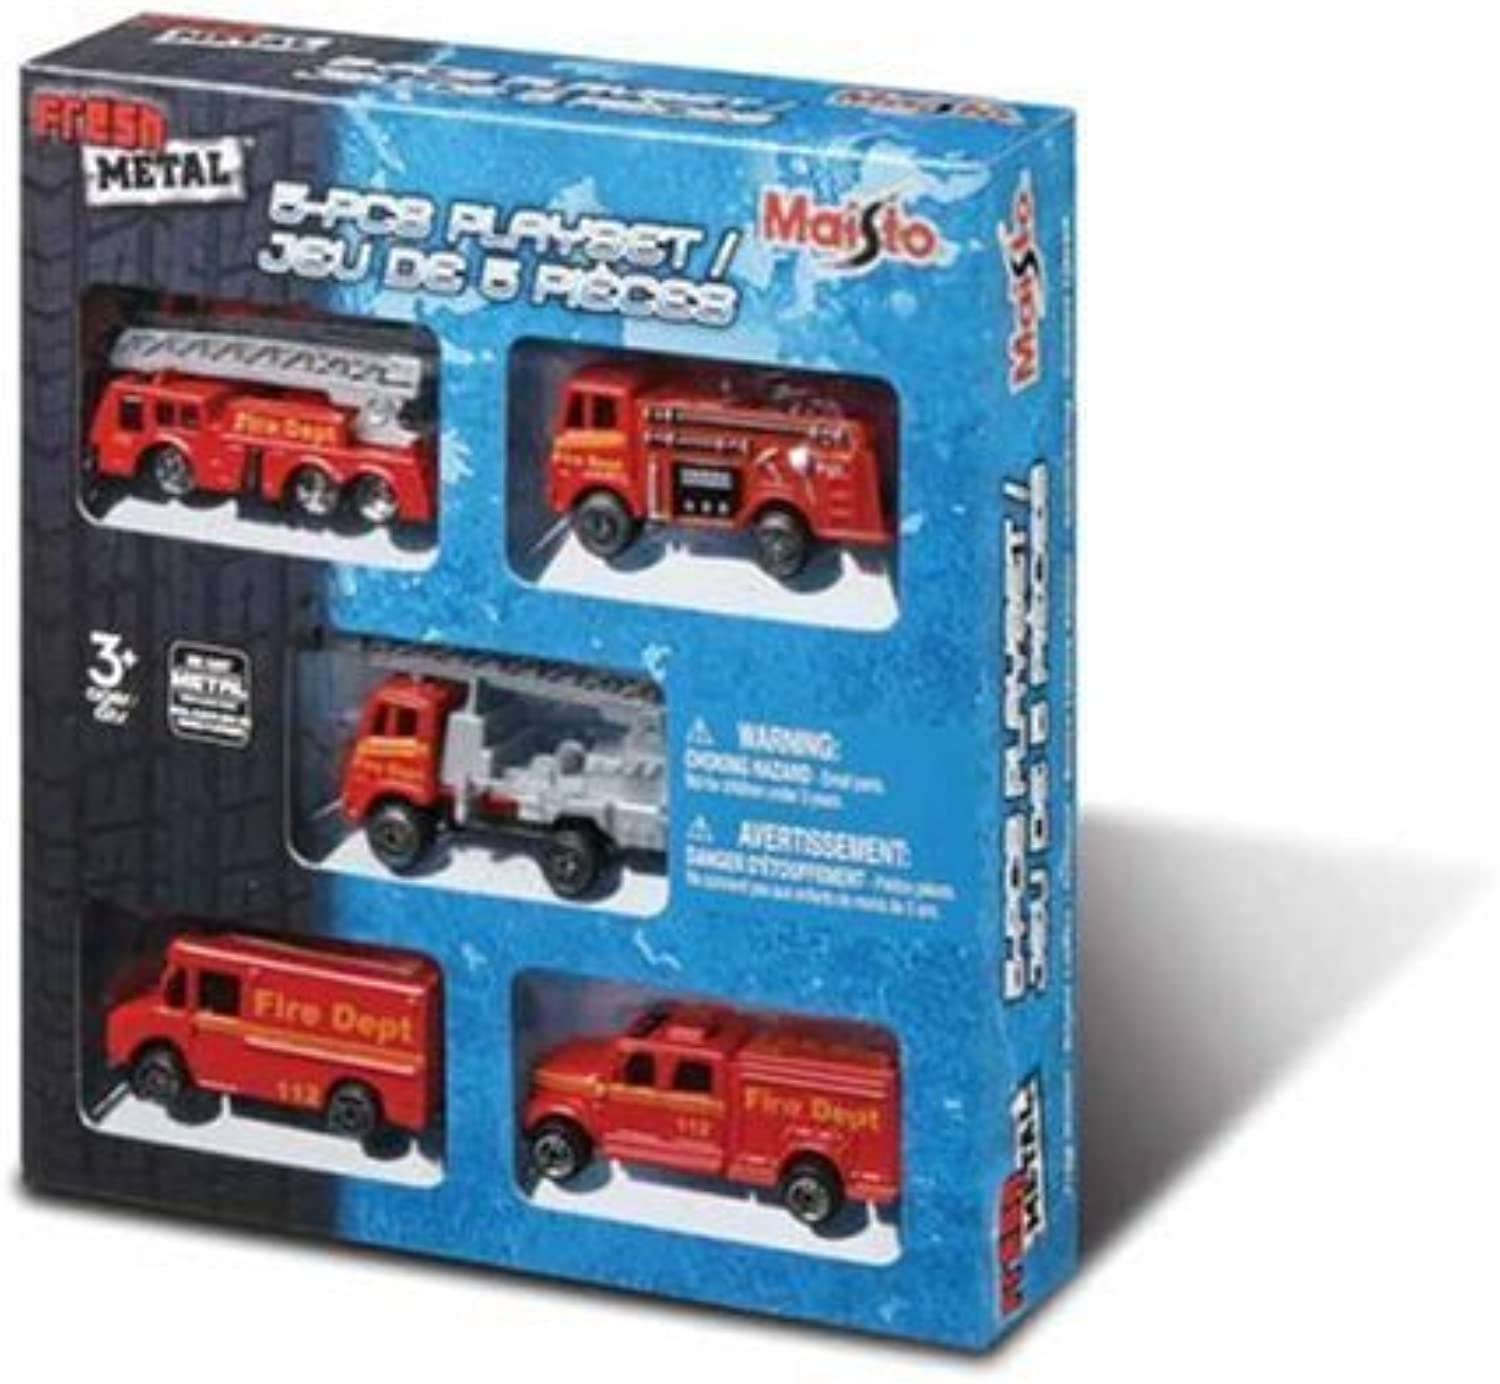 Fresh Metal  5 Piece Die Cast Emergency Rescue Set by MAISTO